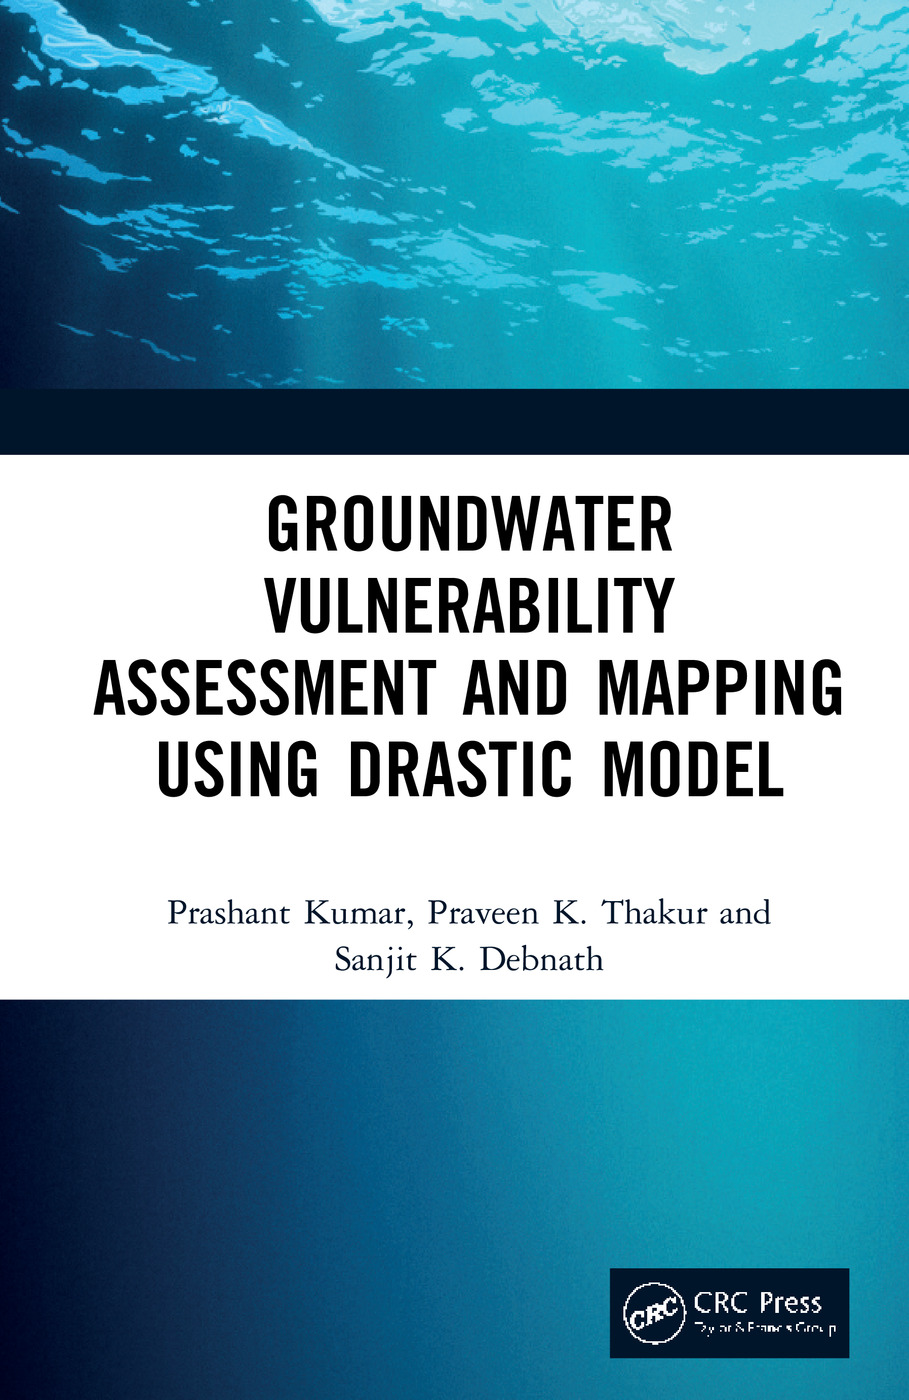 Groundwater Vulnerability Assessment and Mapping using DRASTIC Model book cover